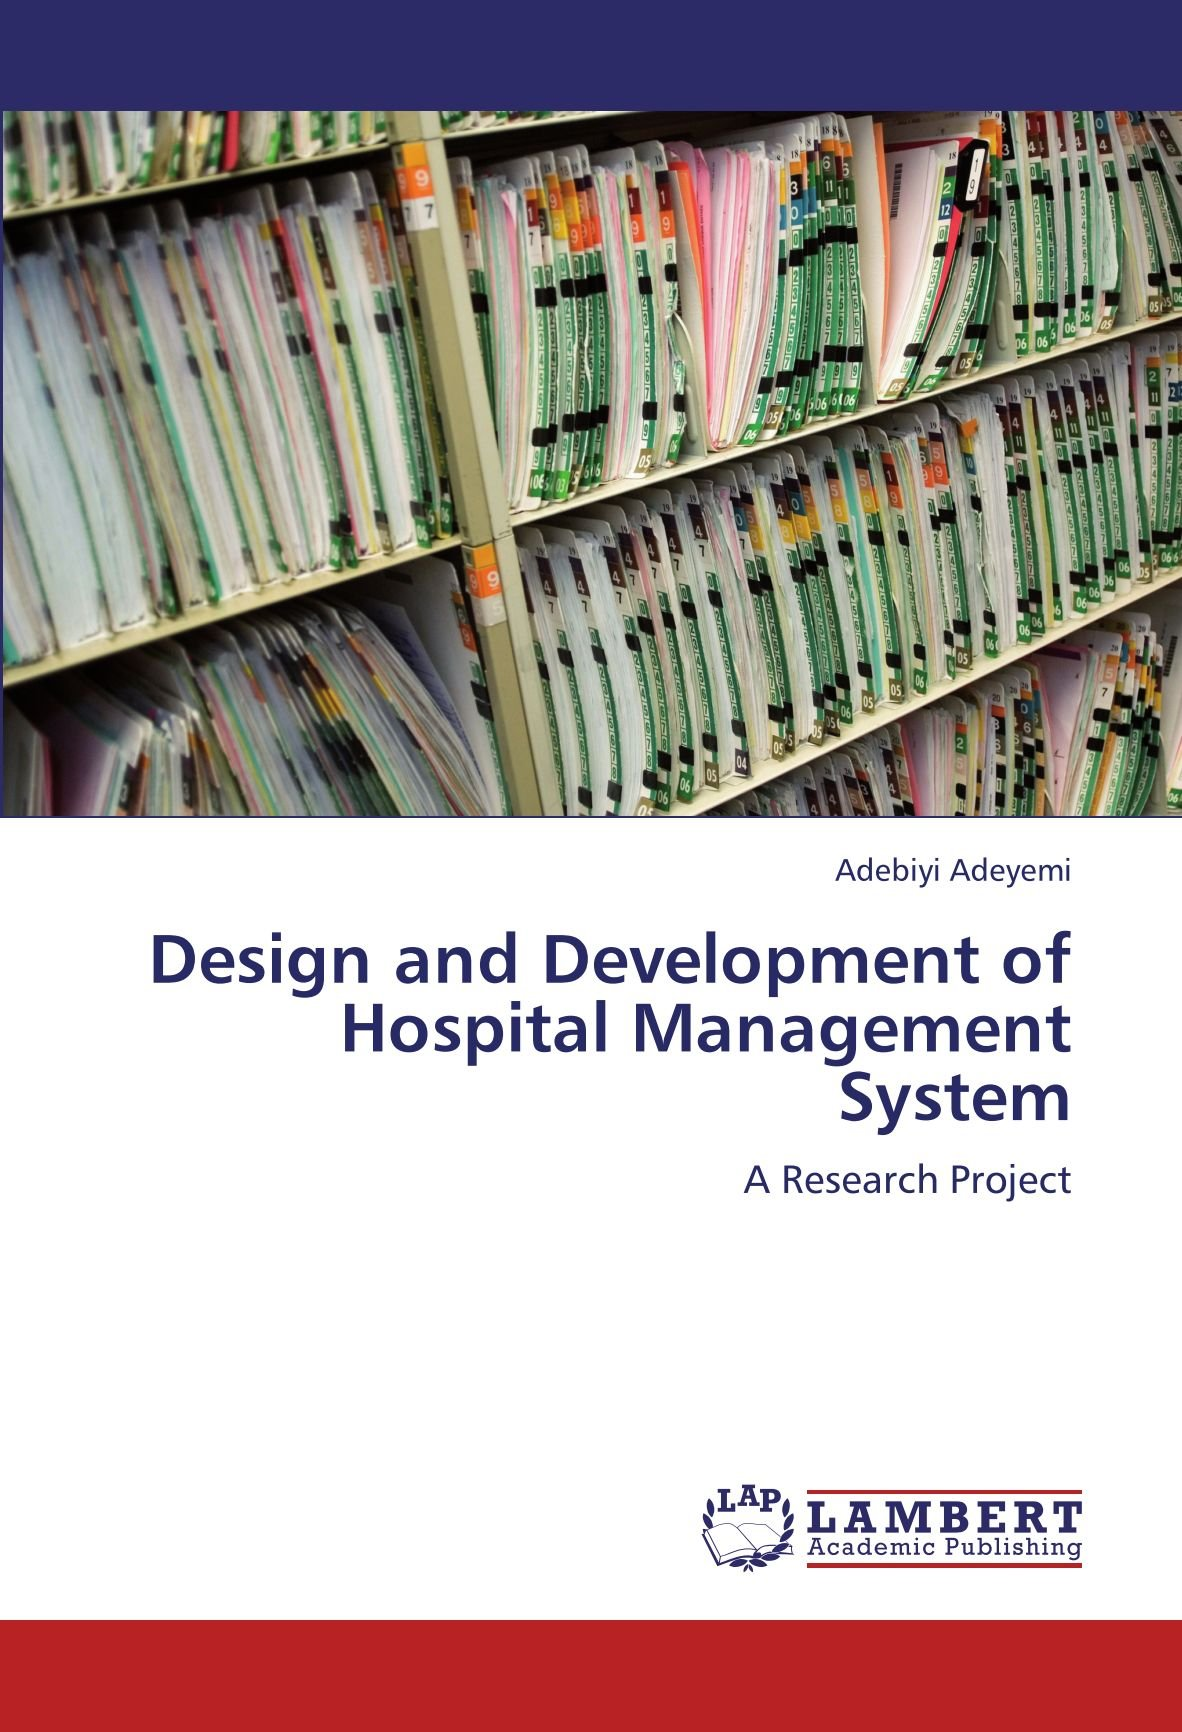 Design and Development of Hospital Management System: A Research